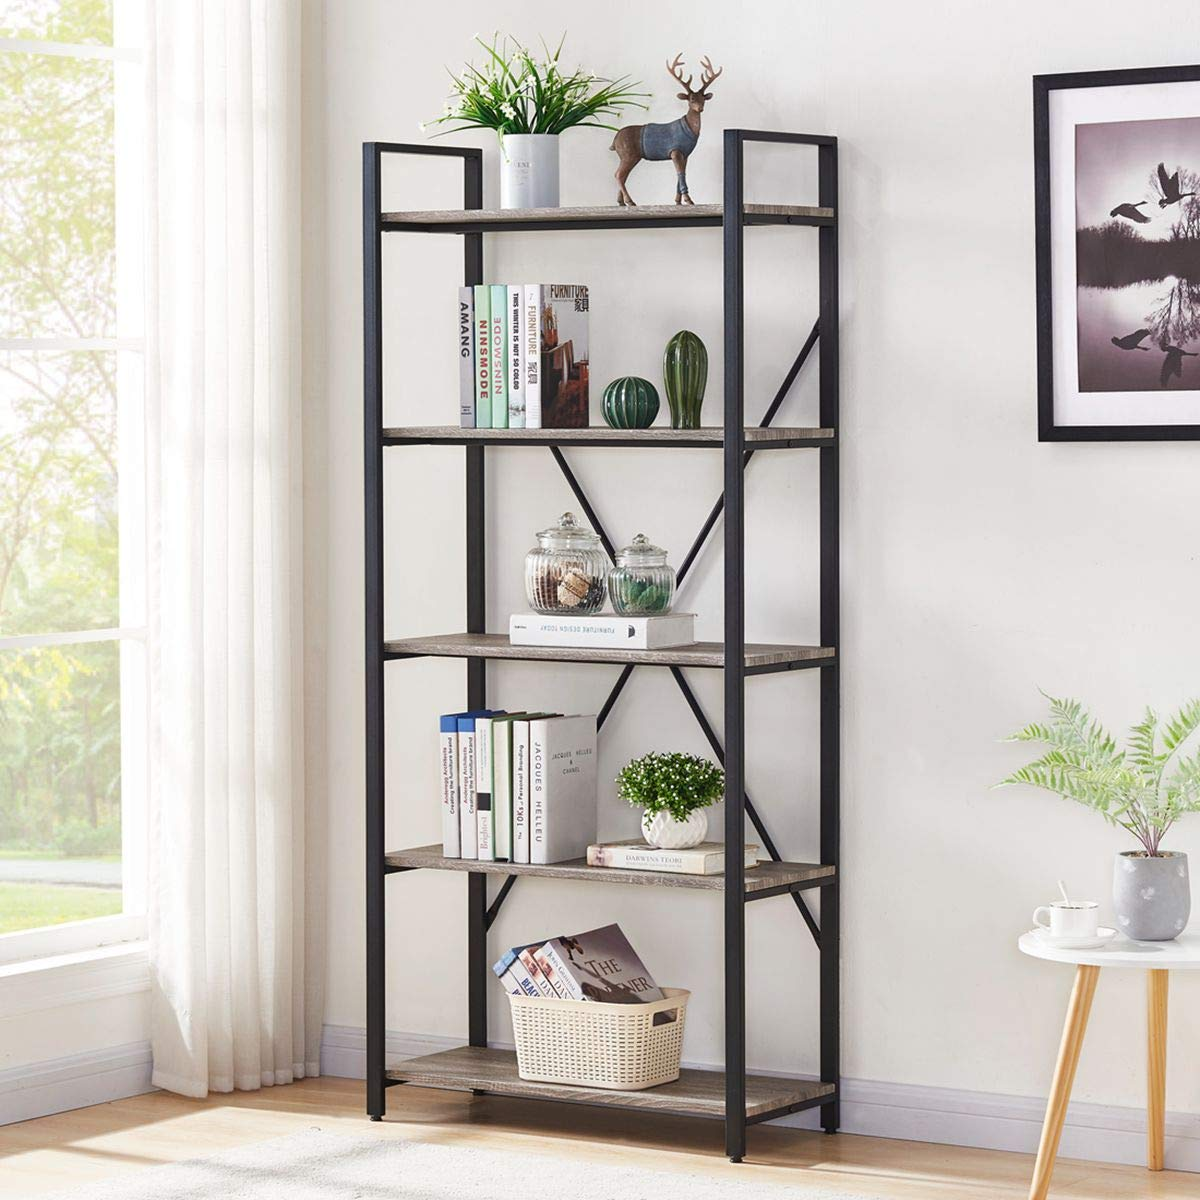 BON AUGURE Bookshelf 5 Tier Etagere Bookcase, Wood and Metal Shelving Unit, Industrial Bookshelves and Bookcases (Dark Oak)